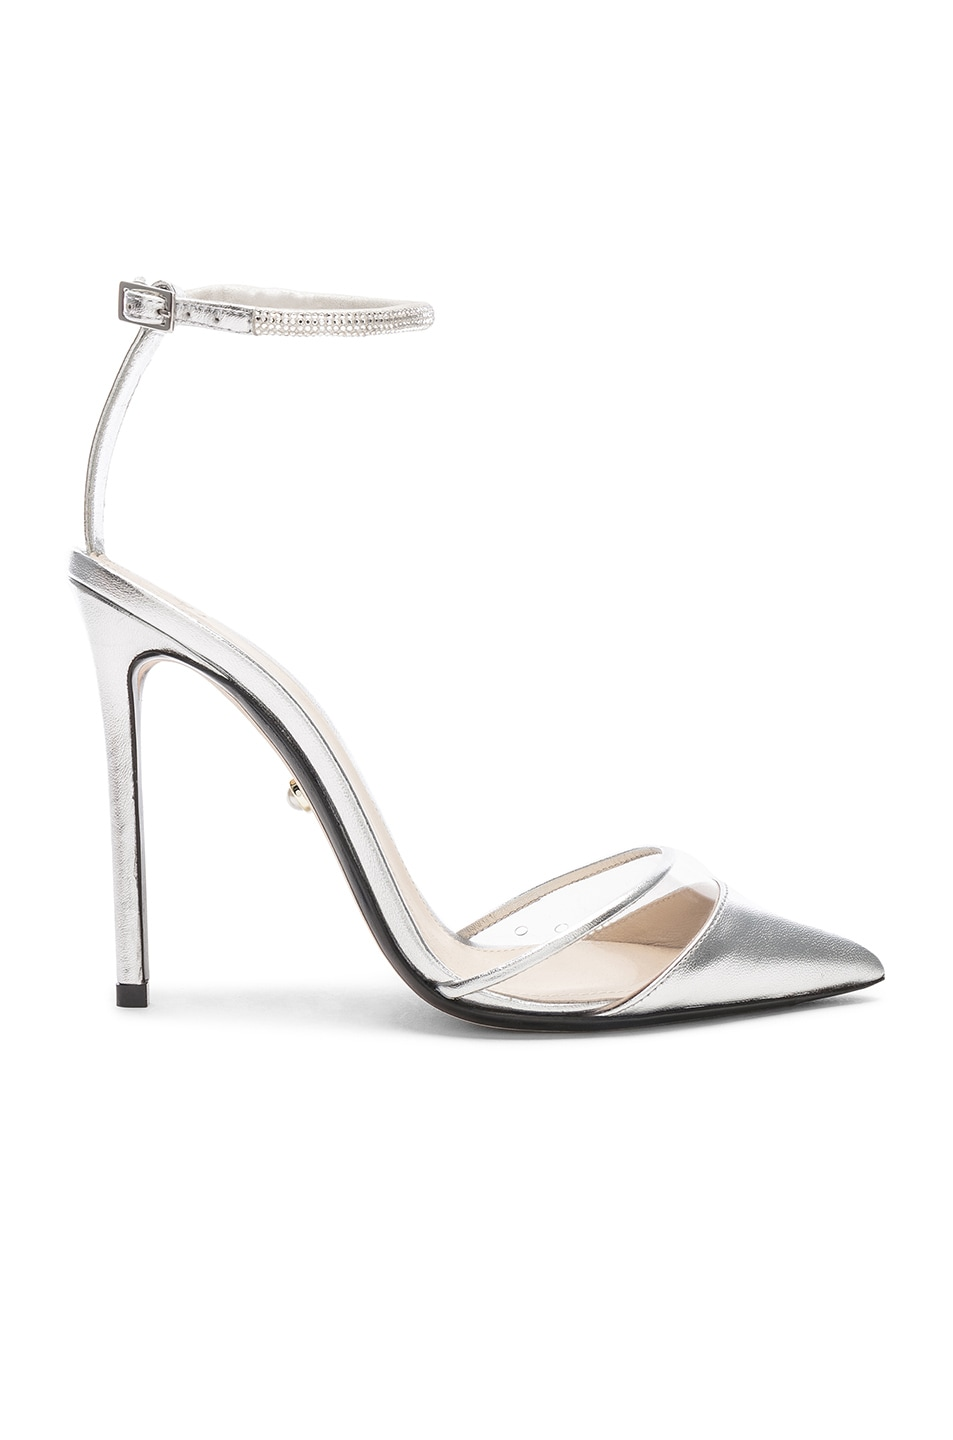 Image 1 of ALEVI Milano Alevi Alice Heel in Shine Silver